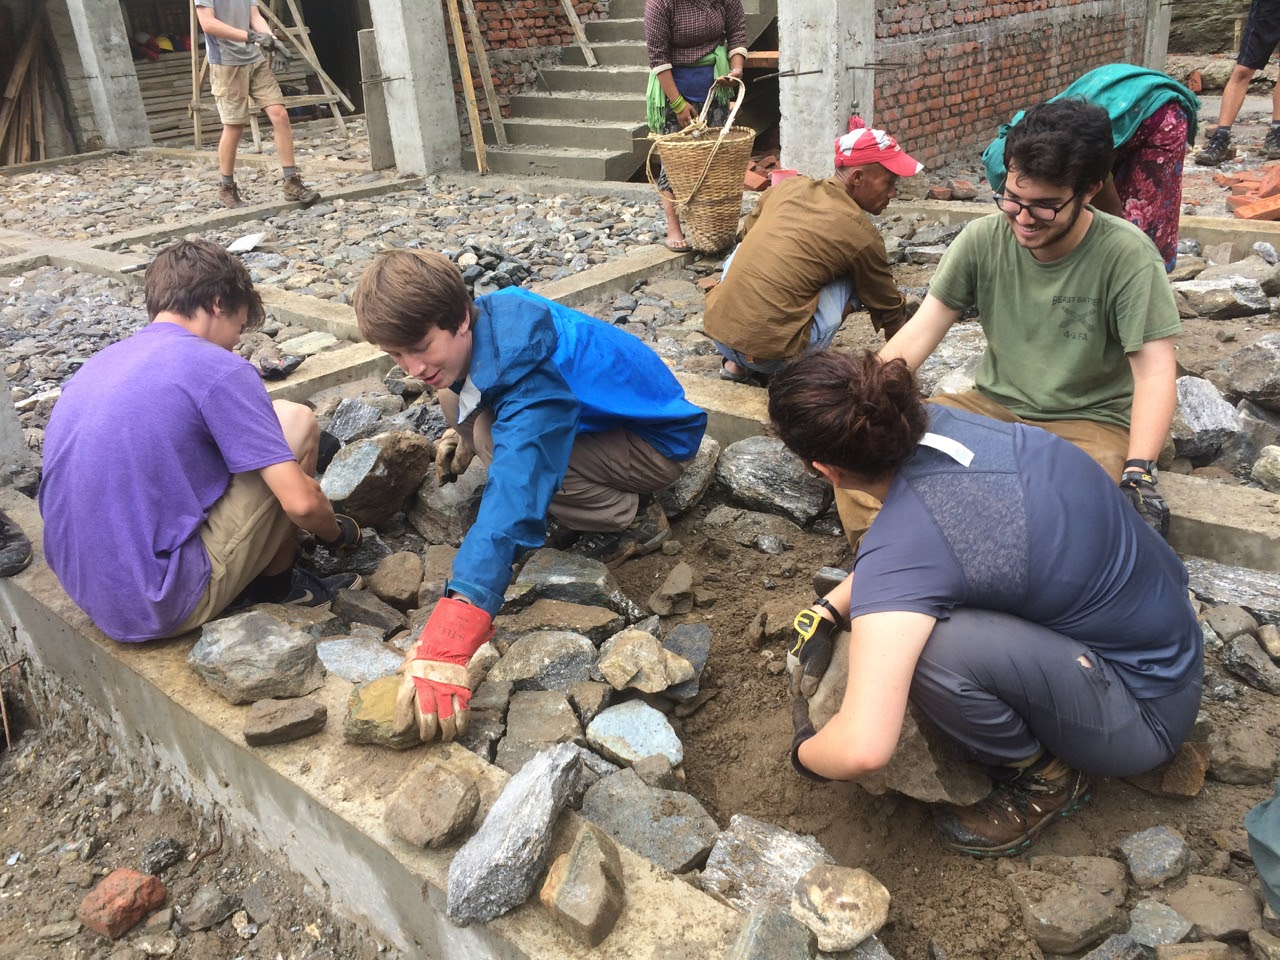 Summer Program - Preserving the Environment | Global Routes: Teen Community Service